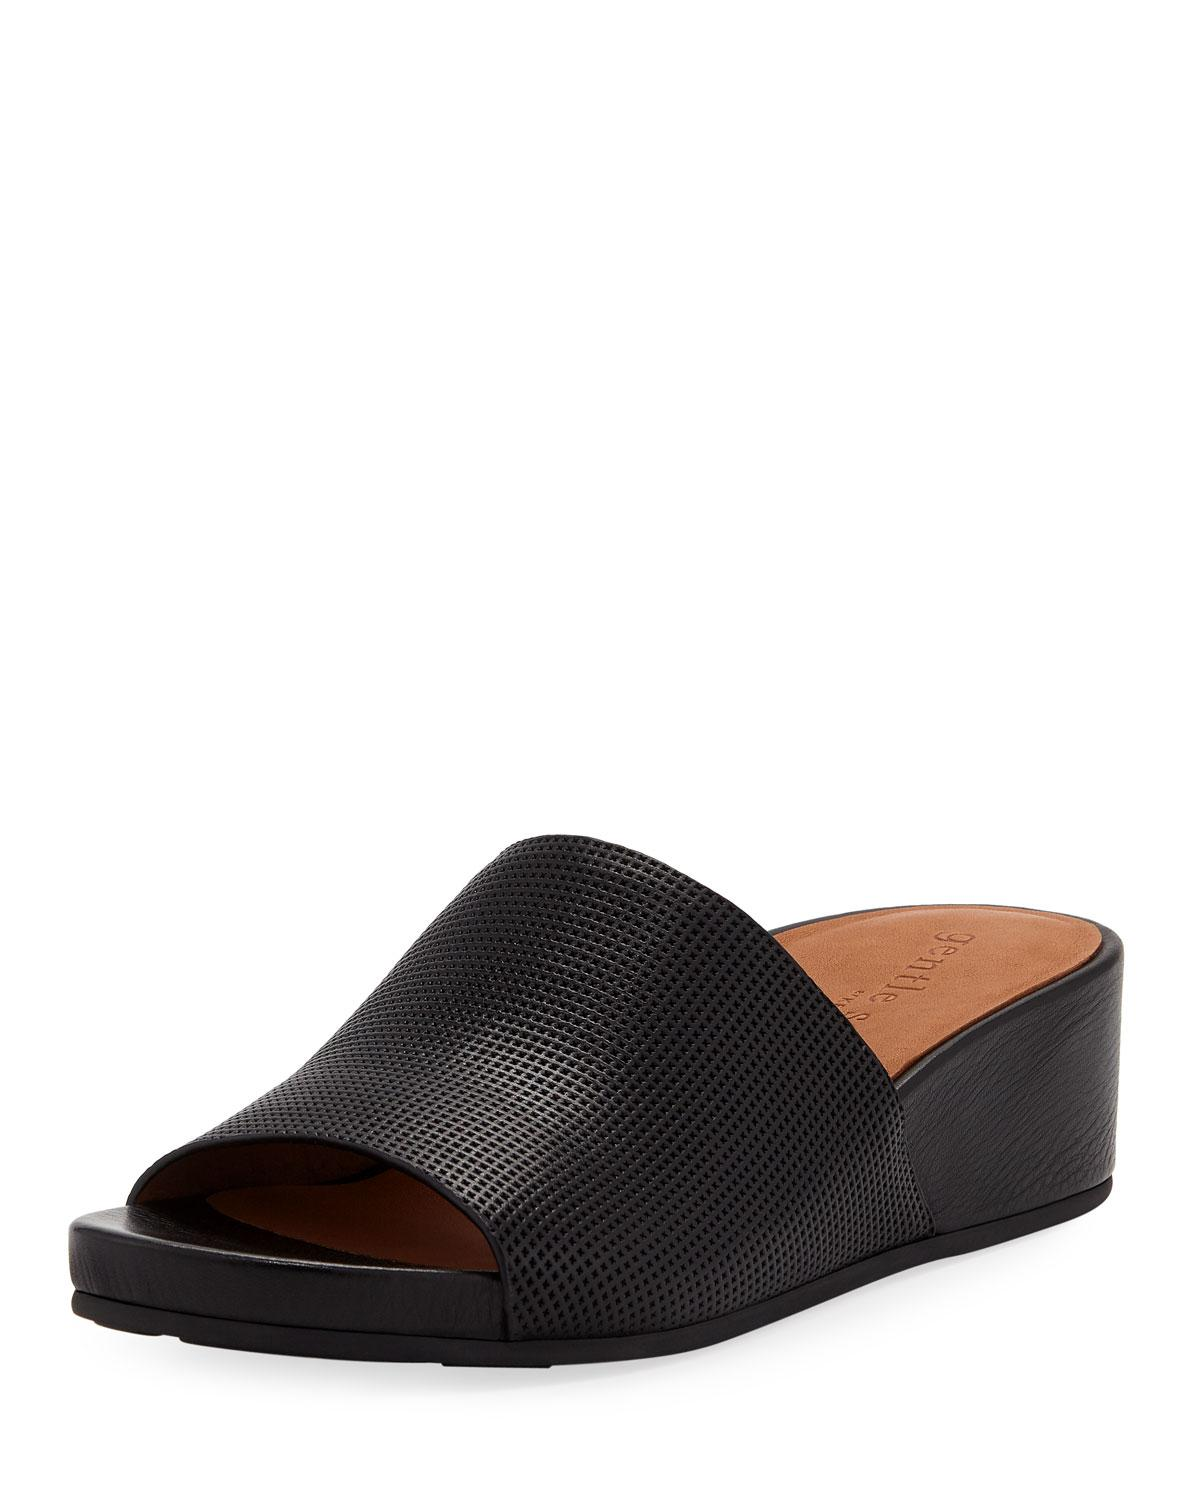 Gentle Souls Gisele Perforated Leather Demi-wedge